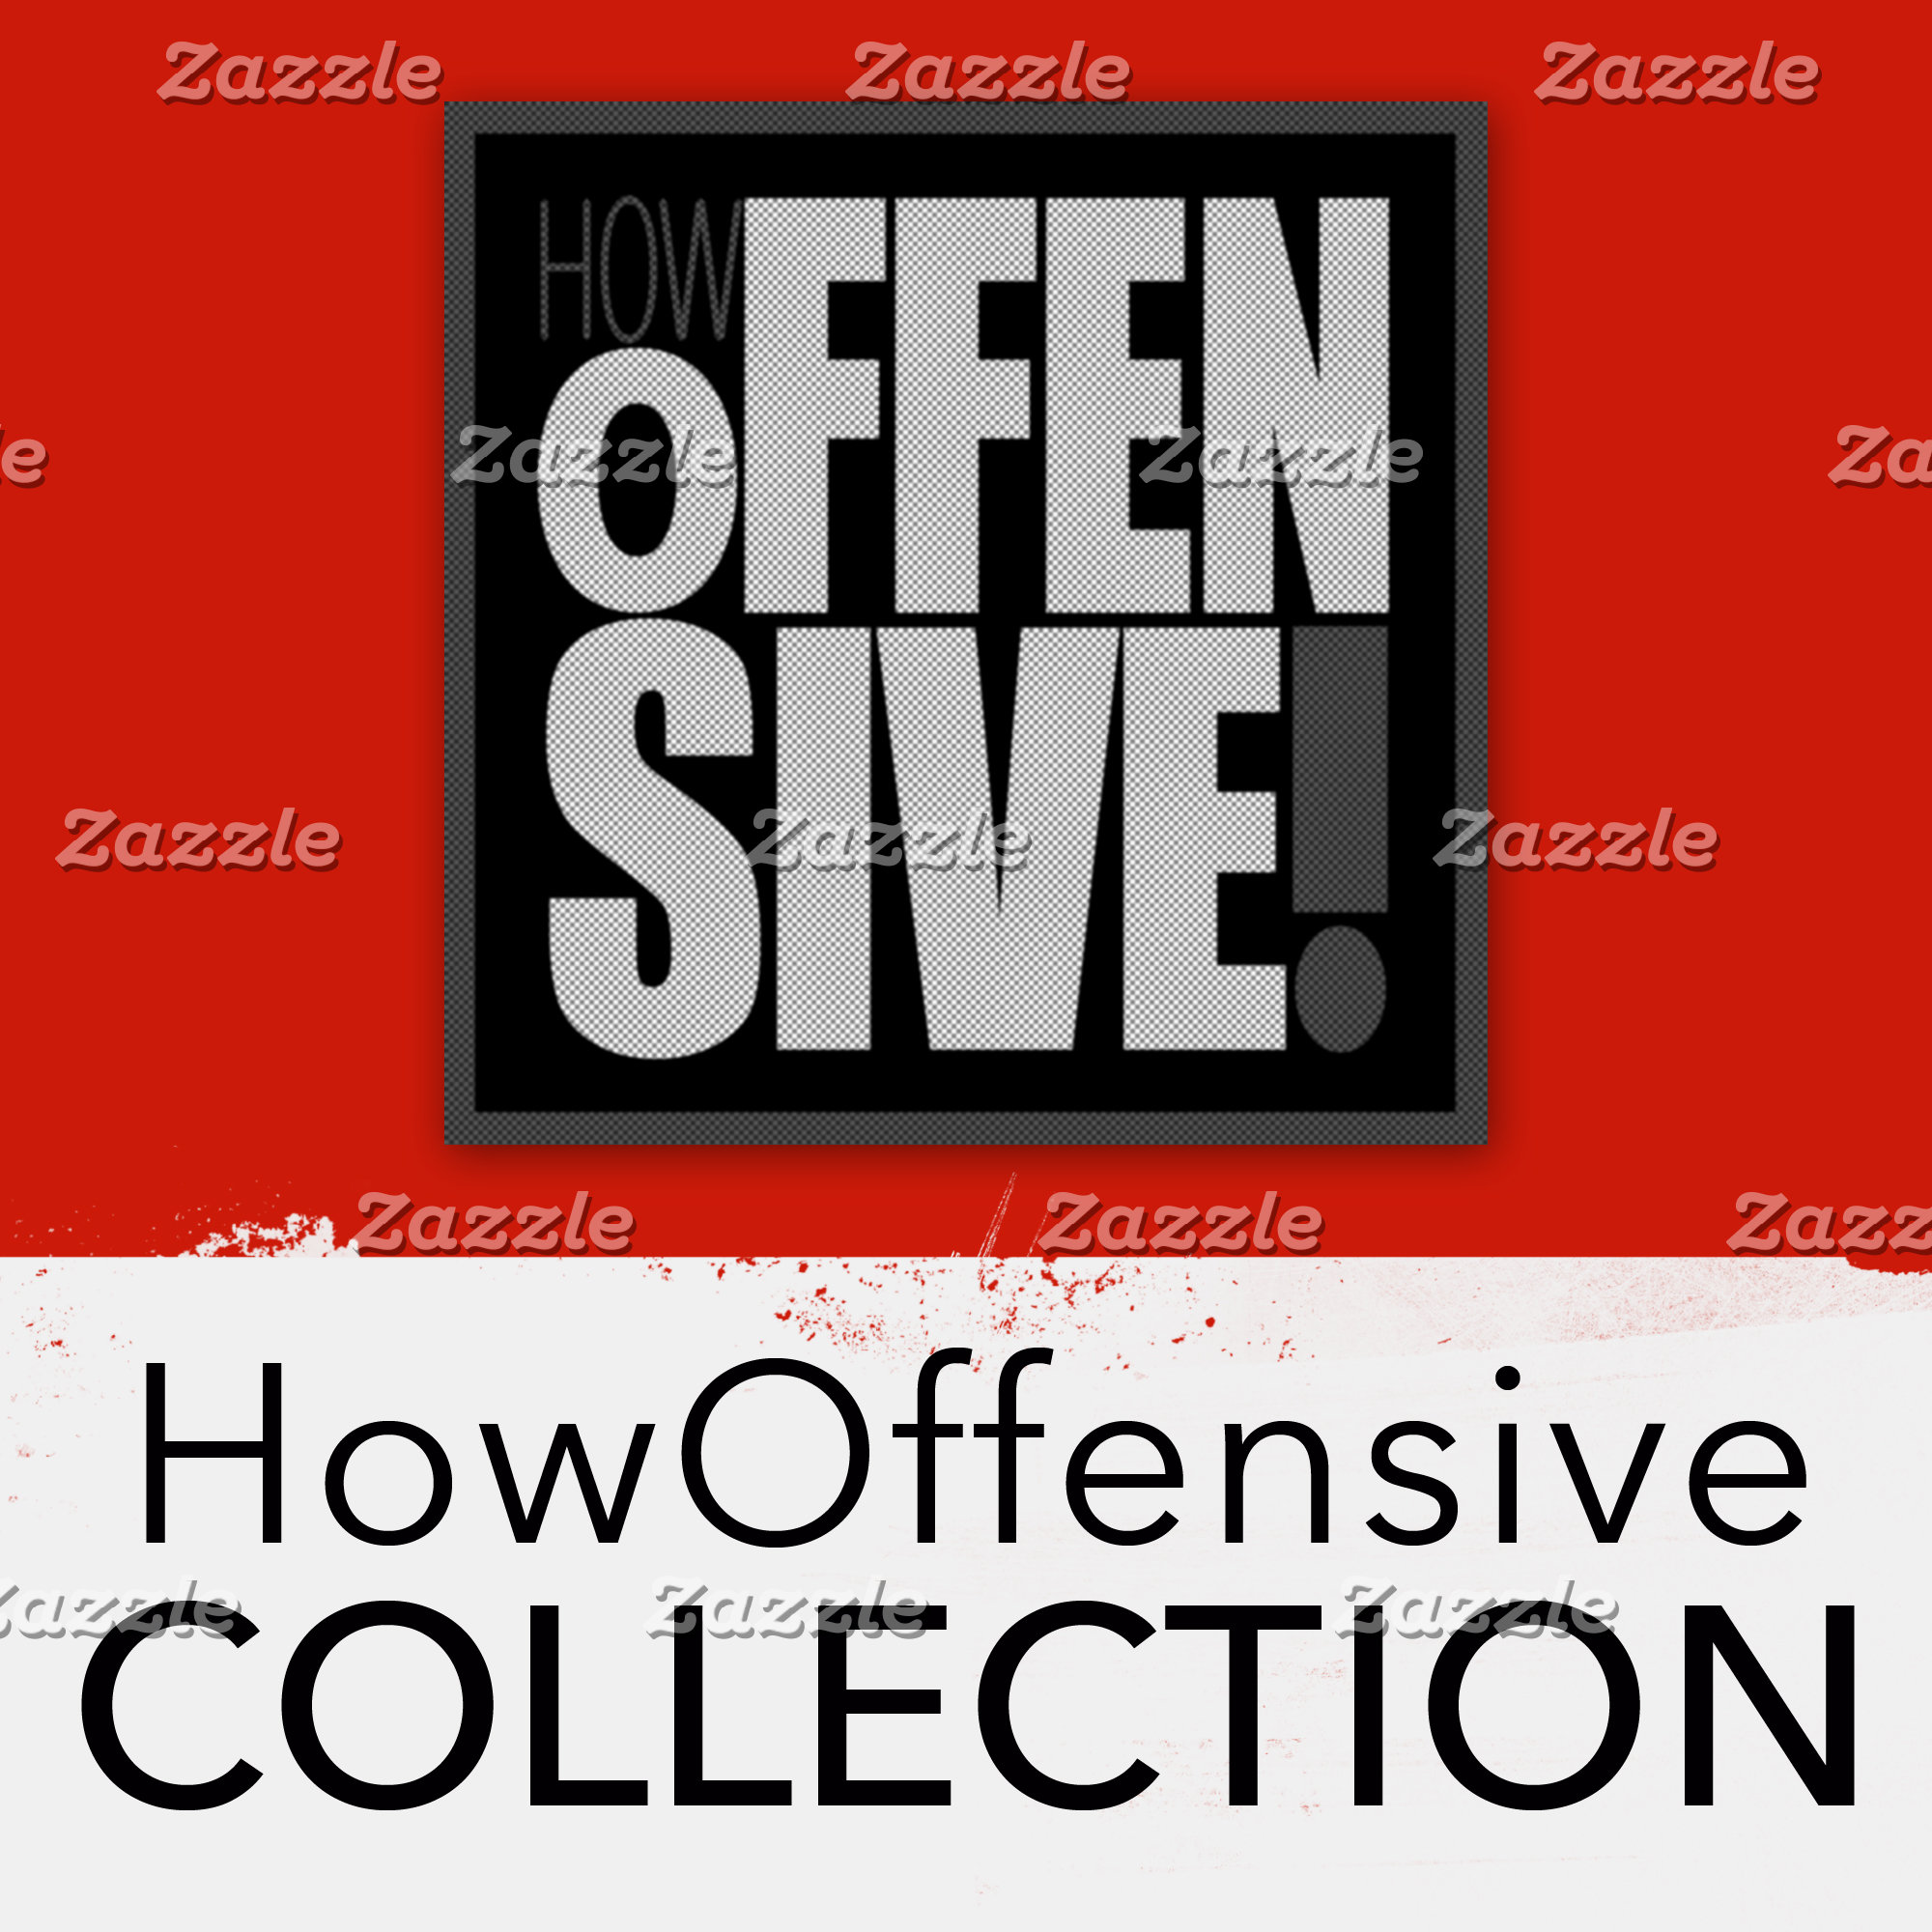 HowOffensive Collection